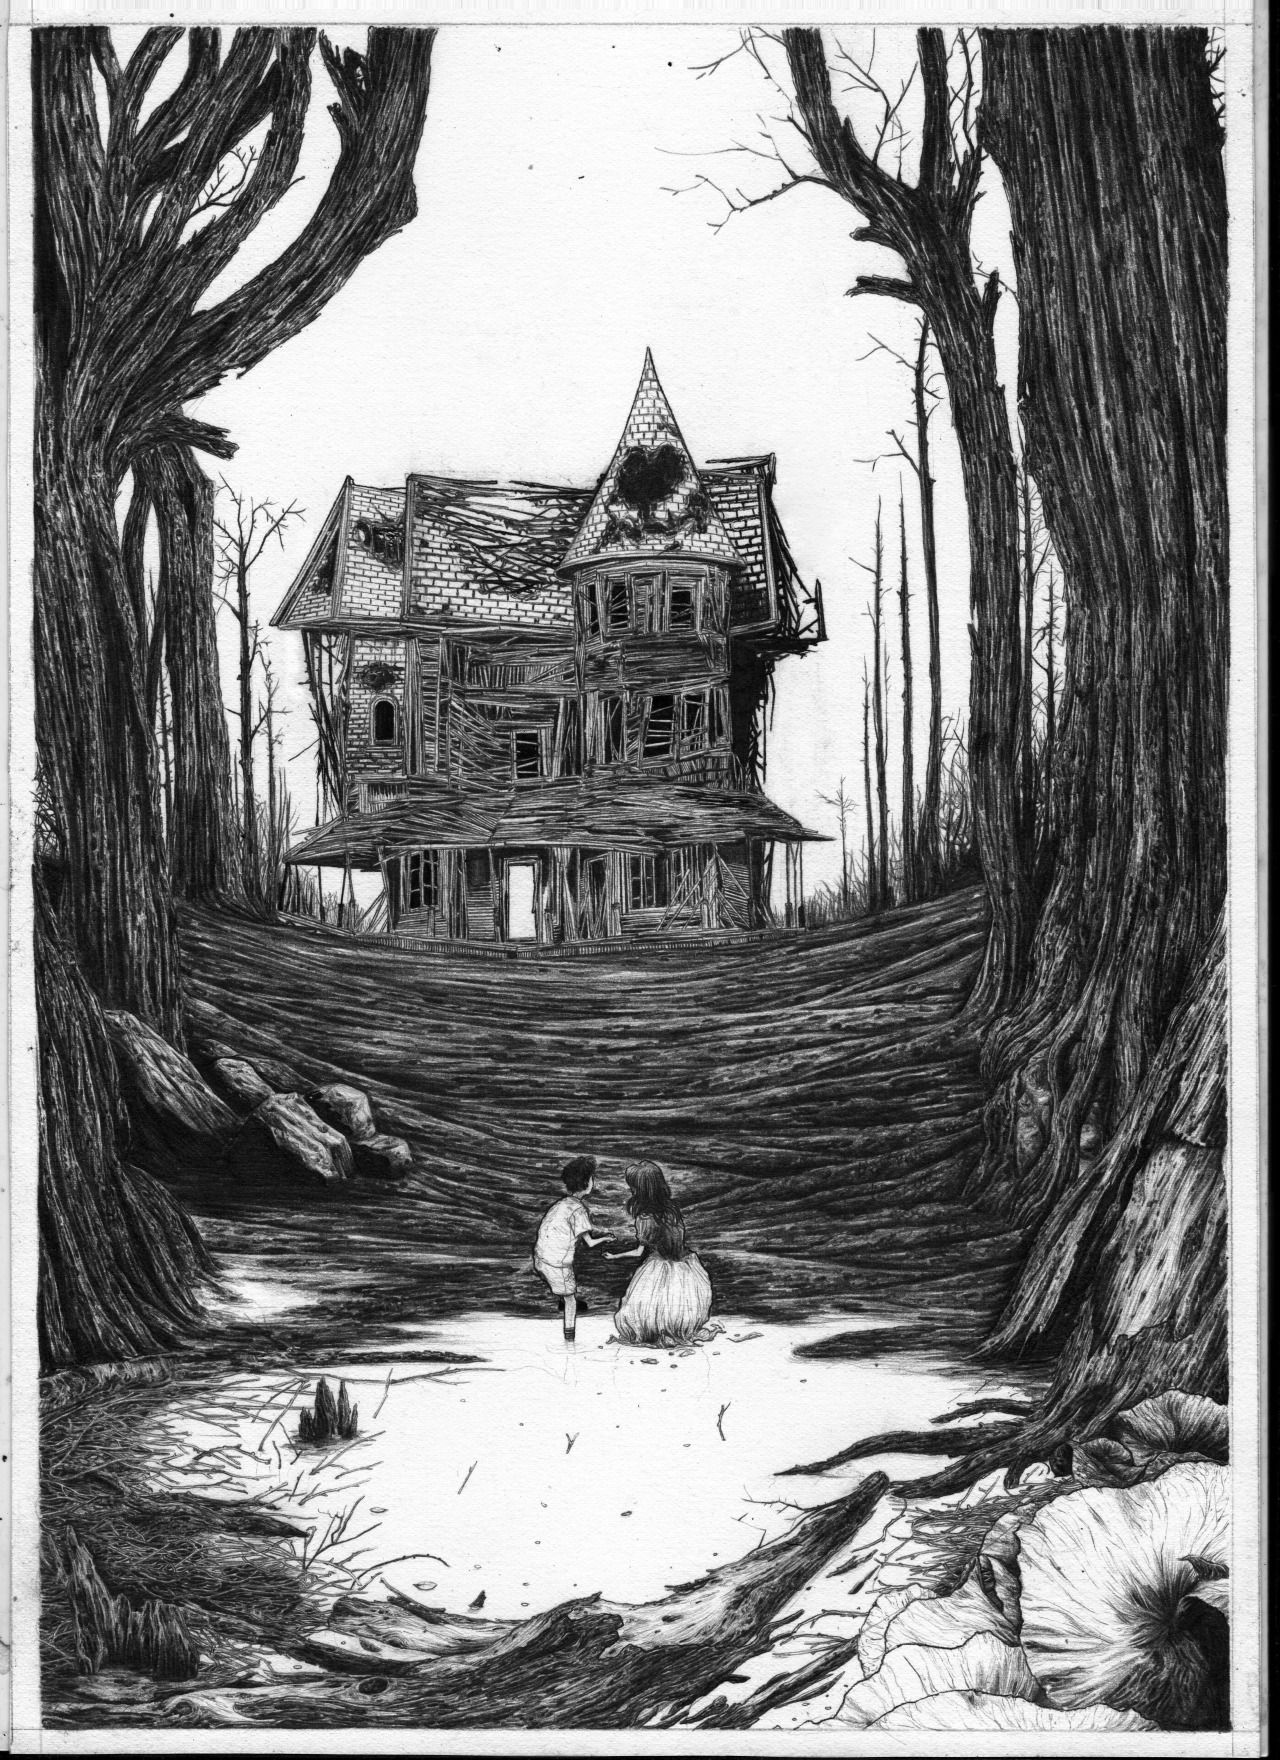 Hansel and Gretel black and white illustration by Zakuro Aoyama.